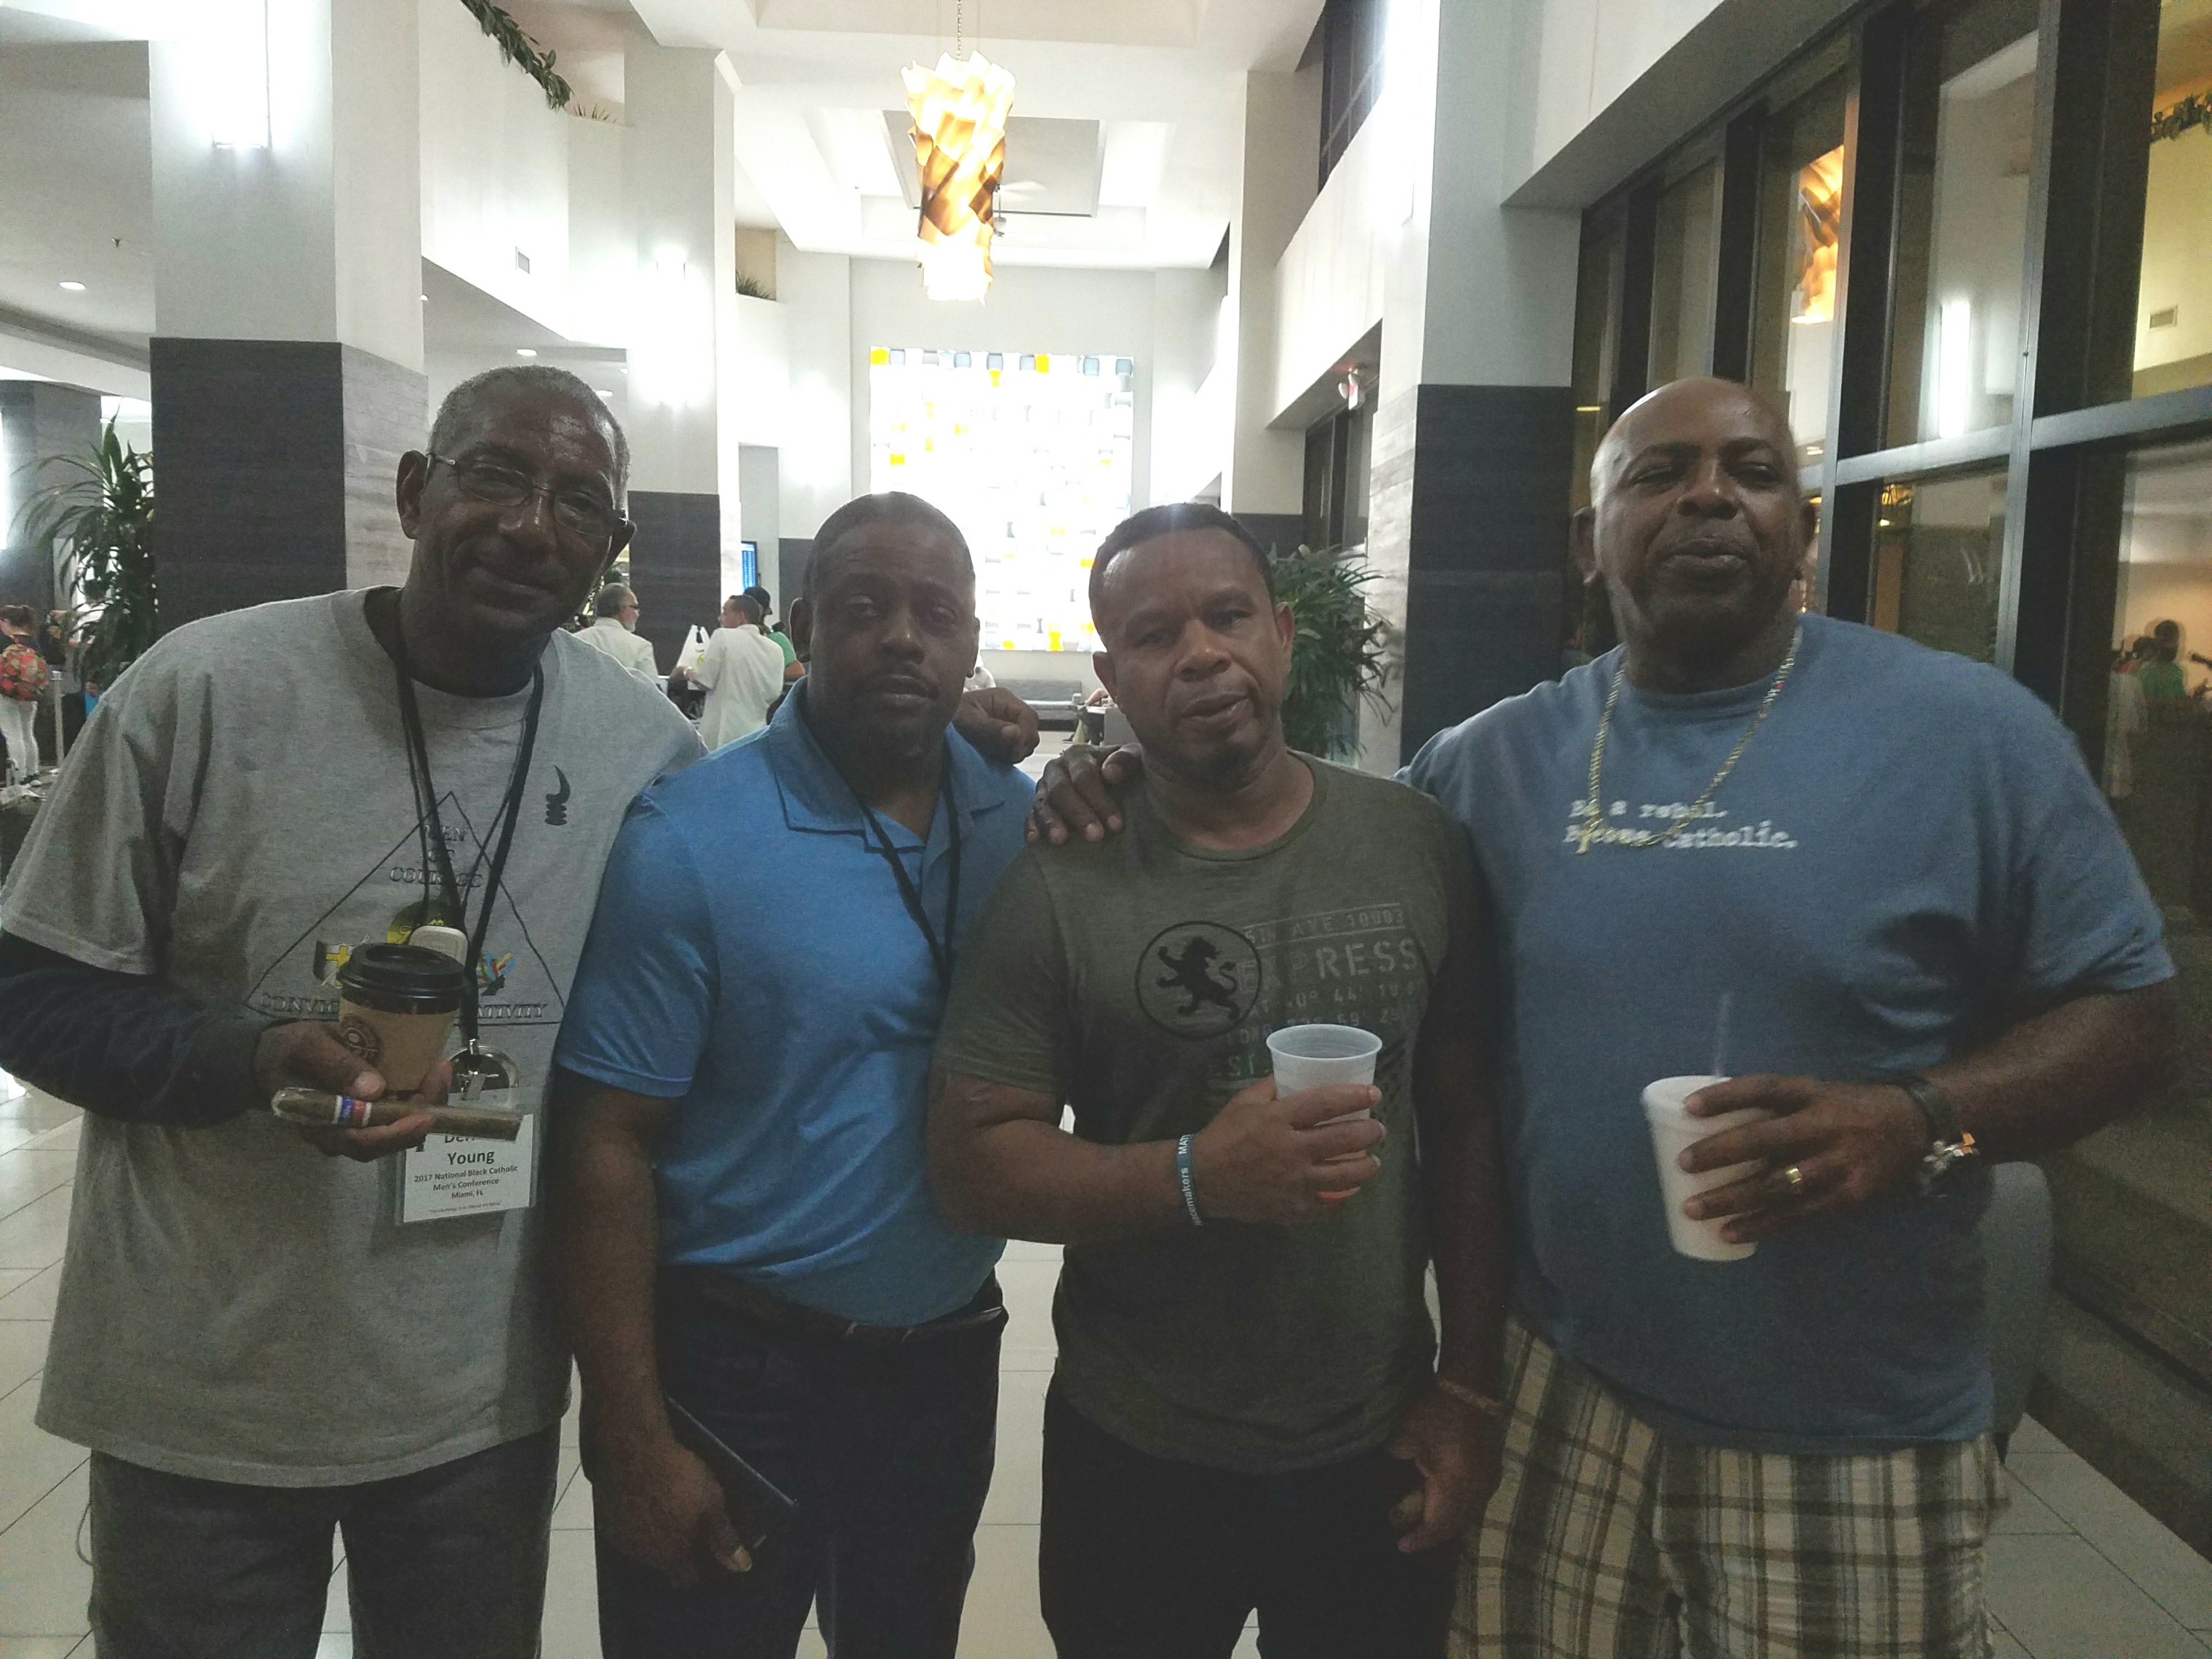 Catholic Men's Conference in Miami Florida 12